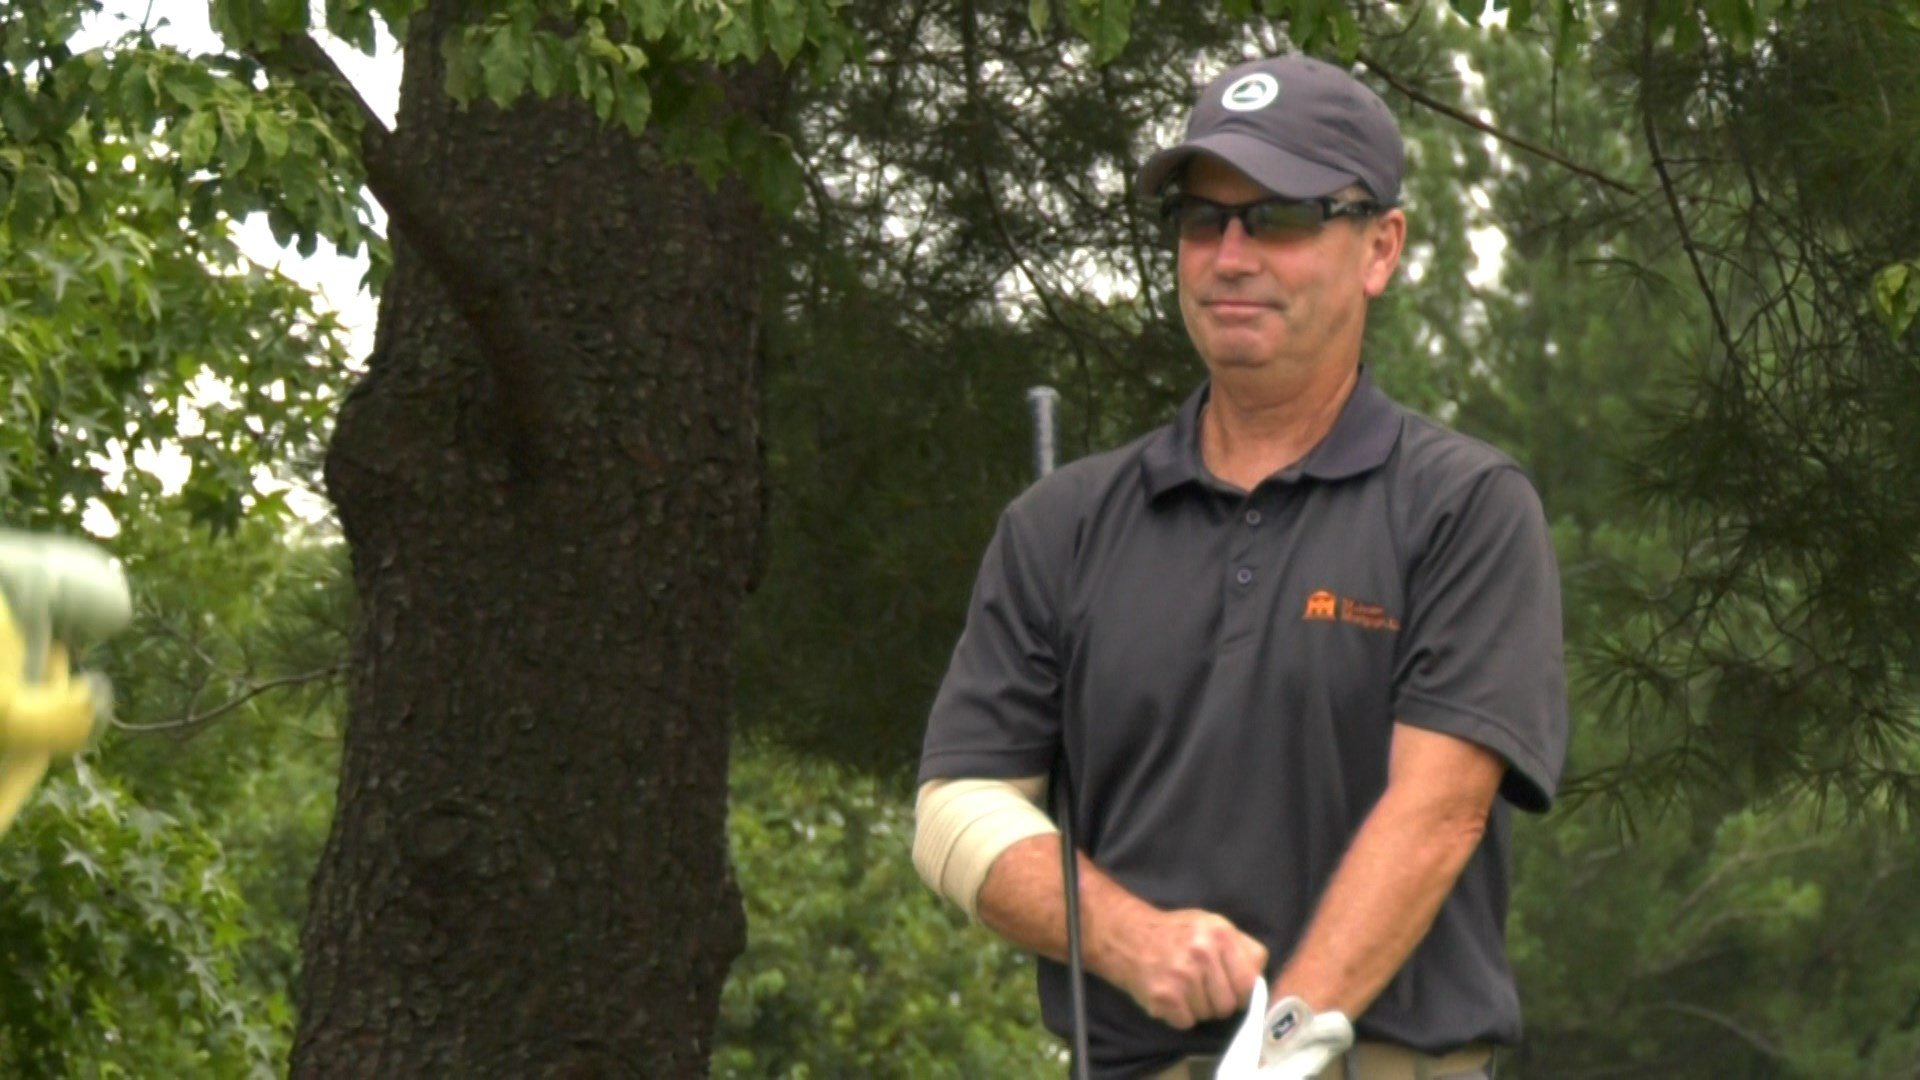 Phil Mahone is tied for 6th after shooting a 72 in round one